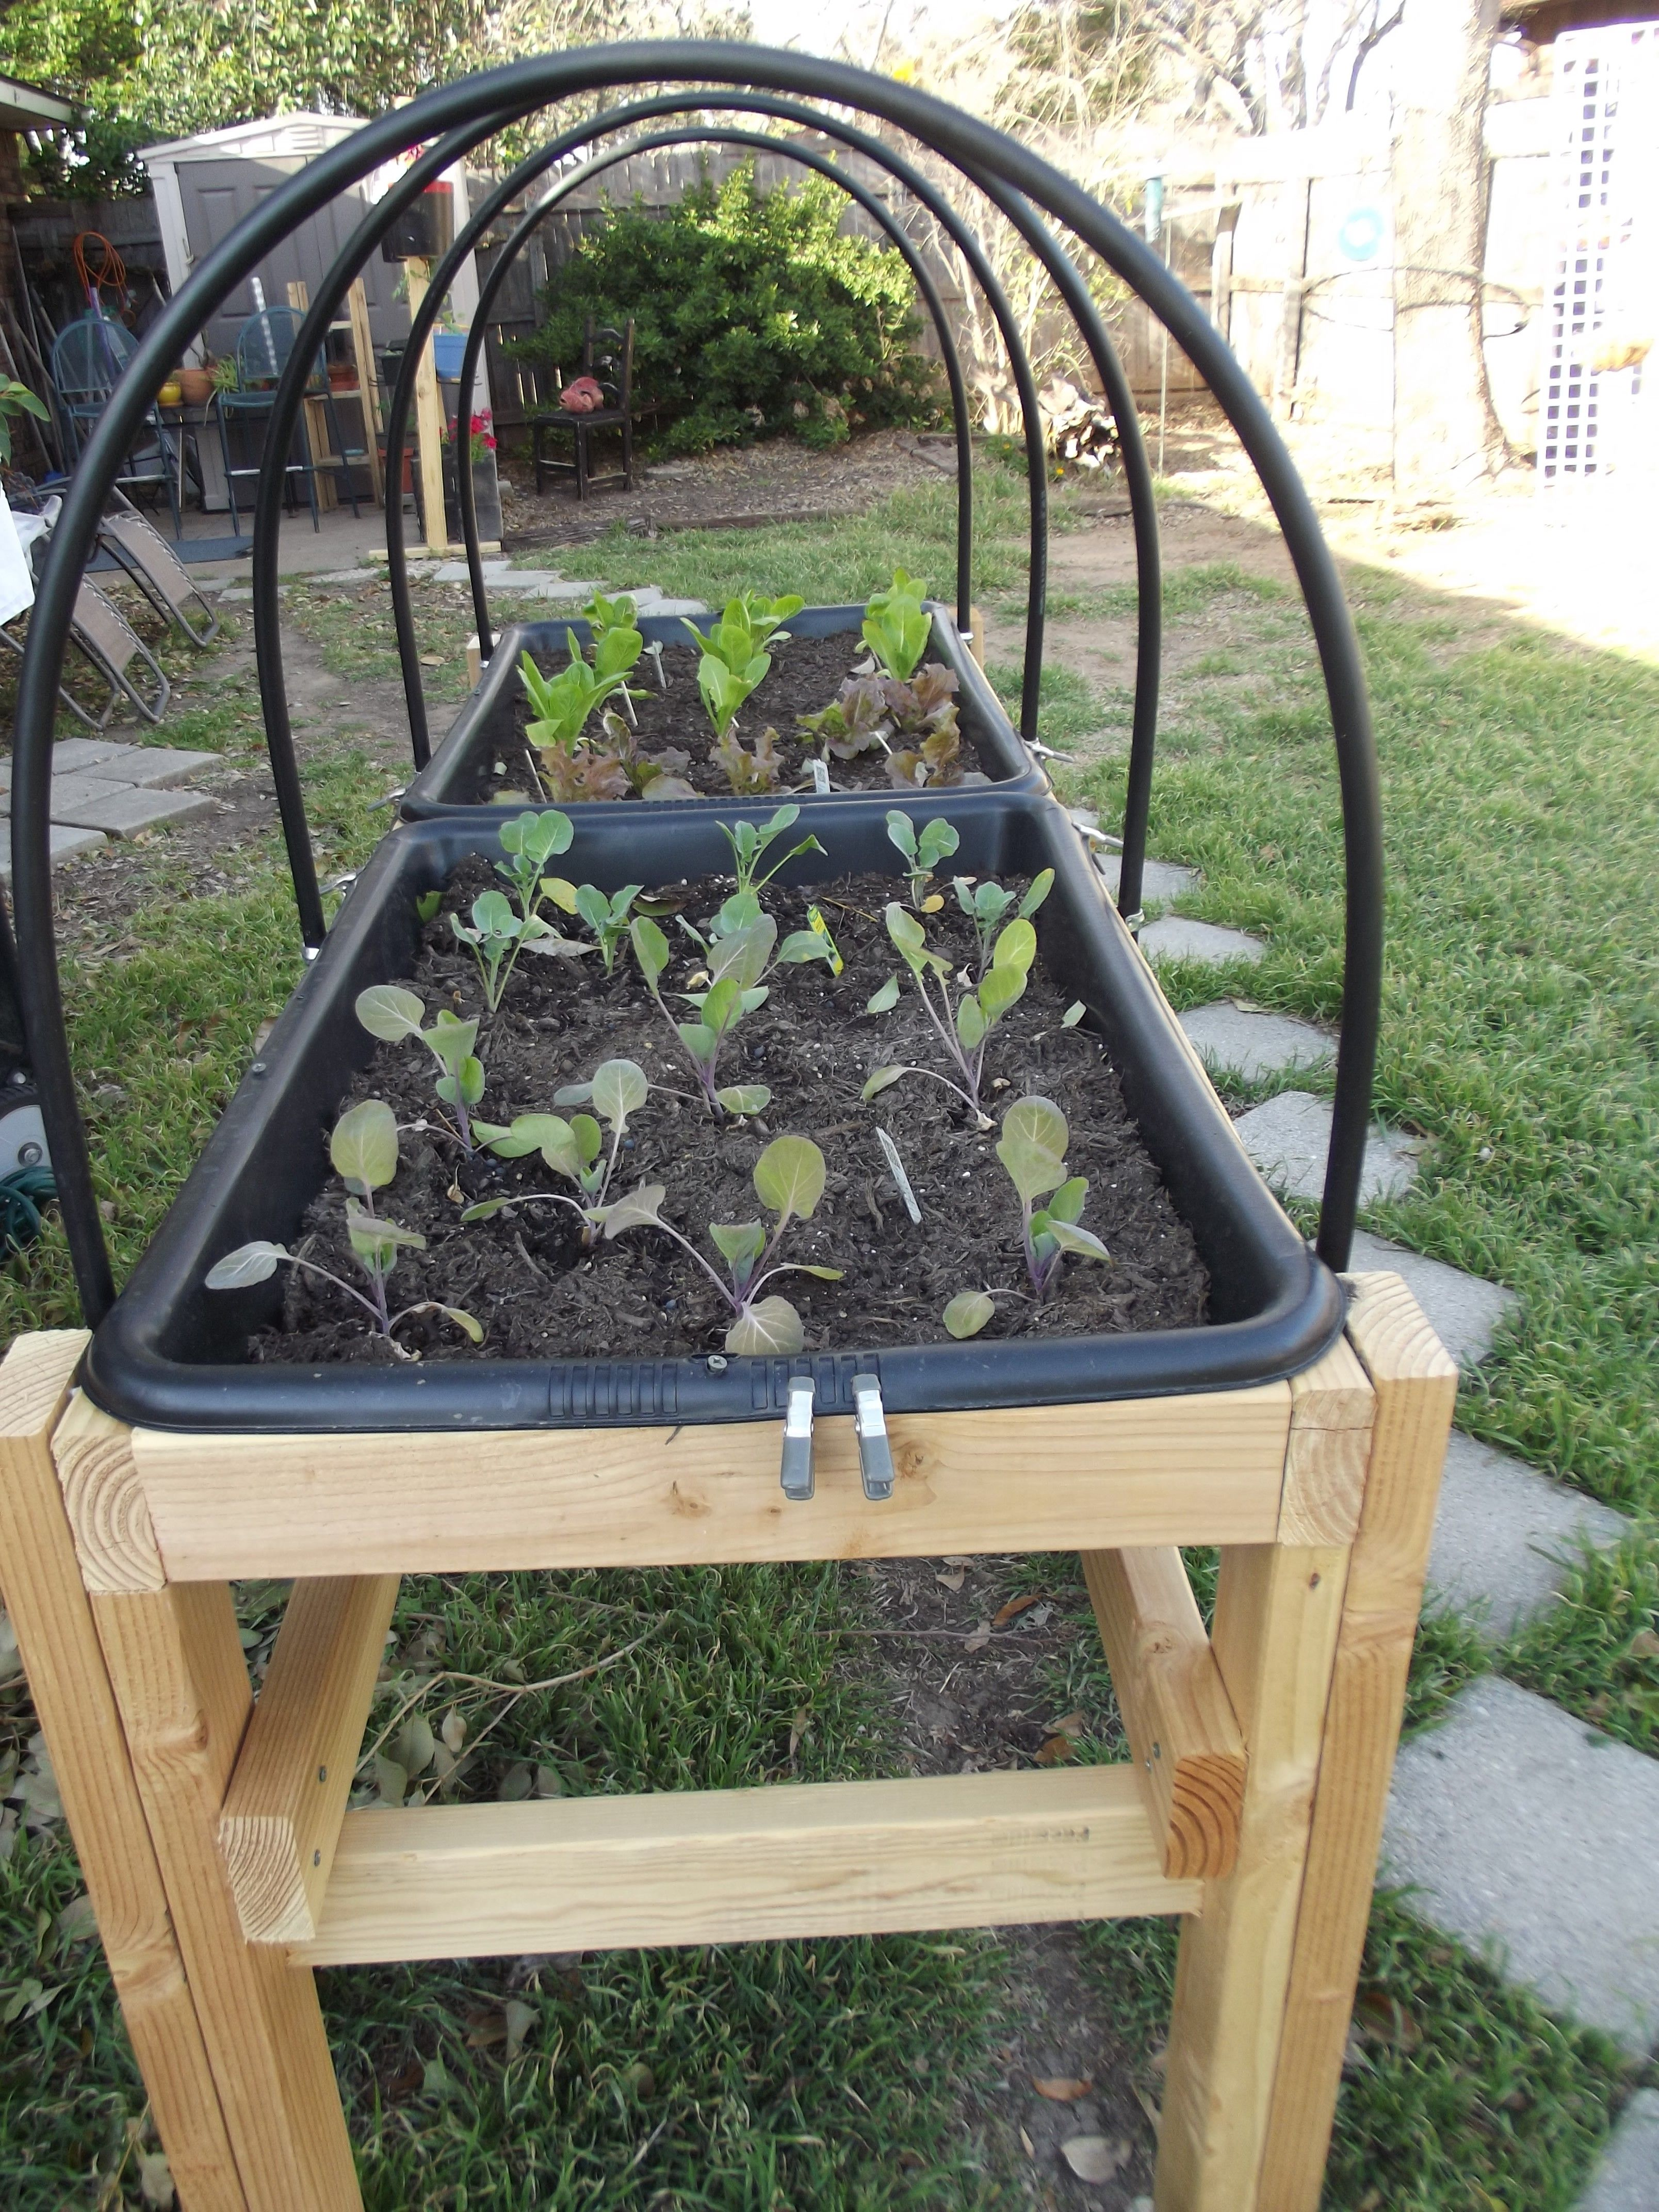 They used 2 cement mixing tubs ($13 each) in this raised bed ... Raised Bed Greenhouse Table Design on raised bed aquaponics, raised bed plans, raised bed greenhouse growing, raised bed kits,